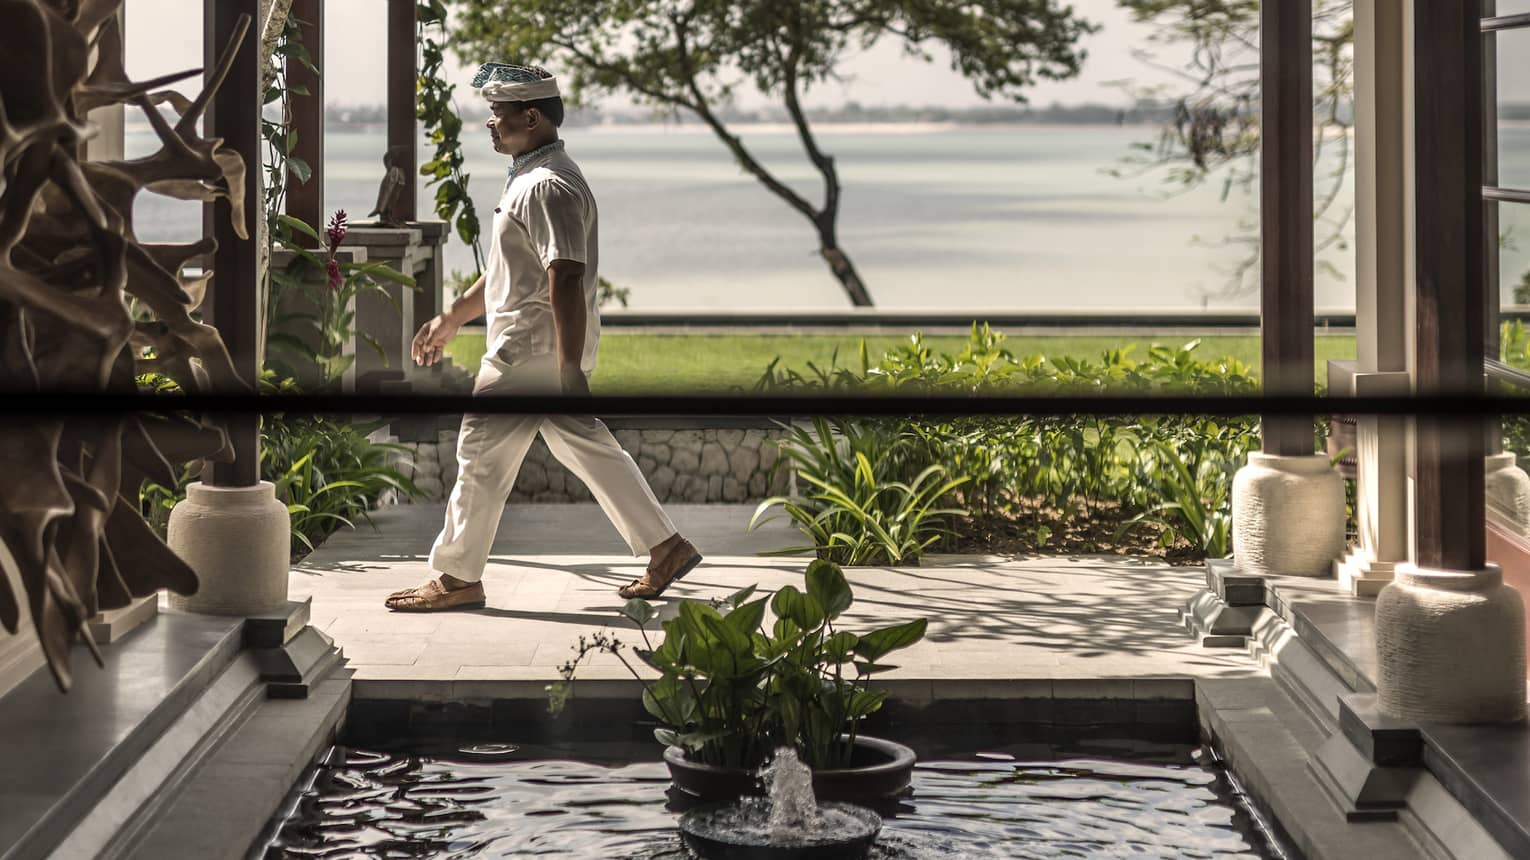 Man in white uniform walks by small pond on patio, green grass and beach in background